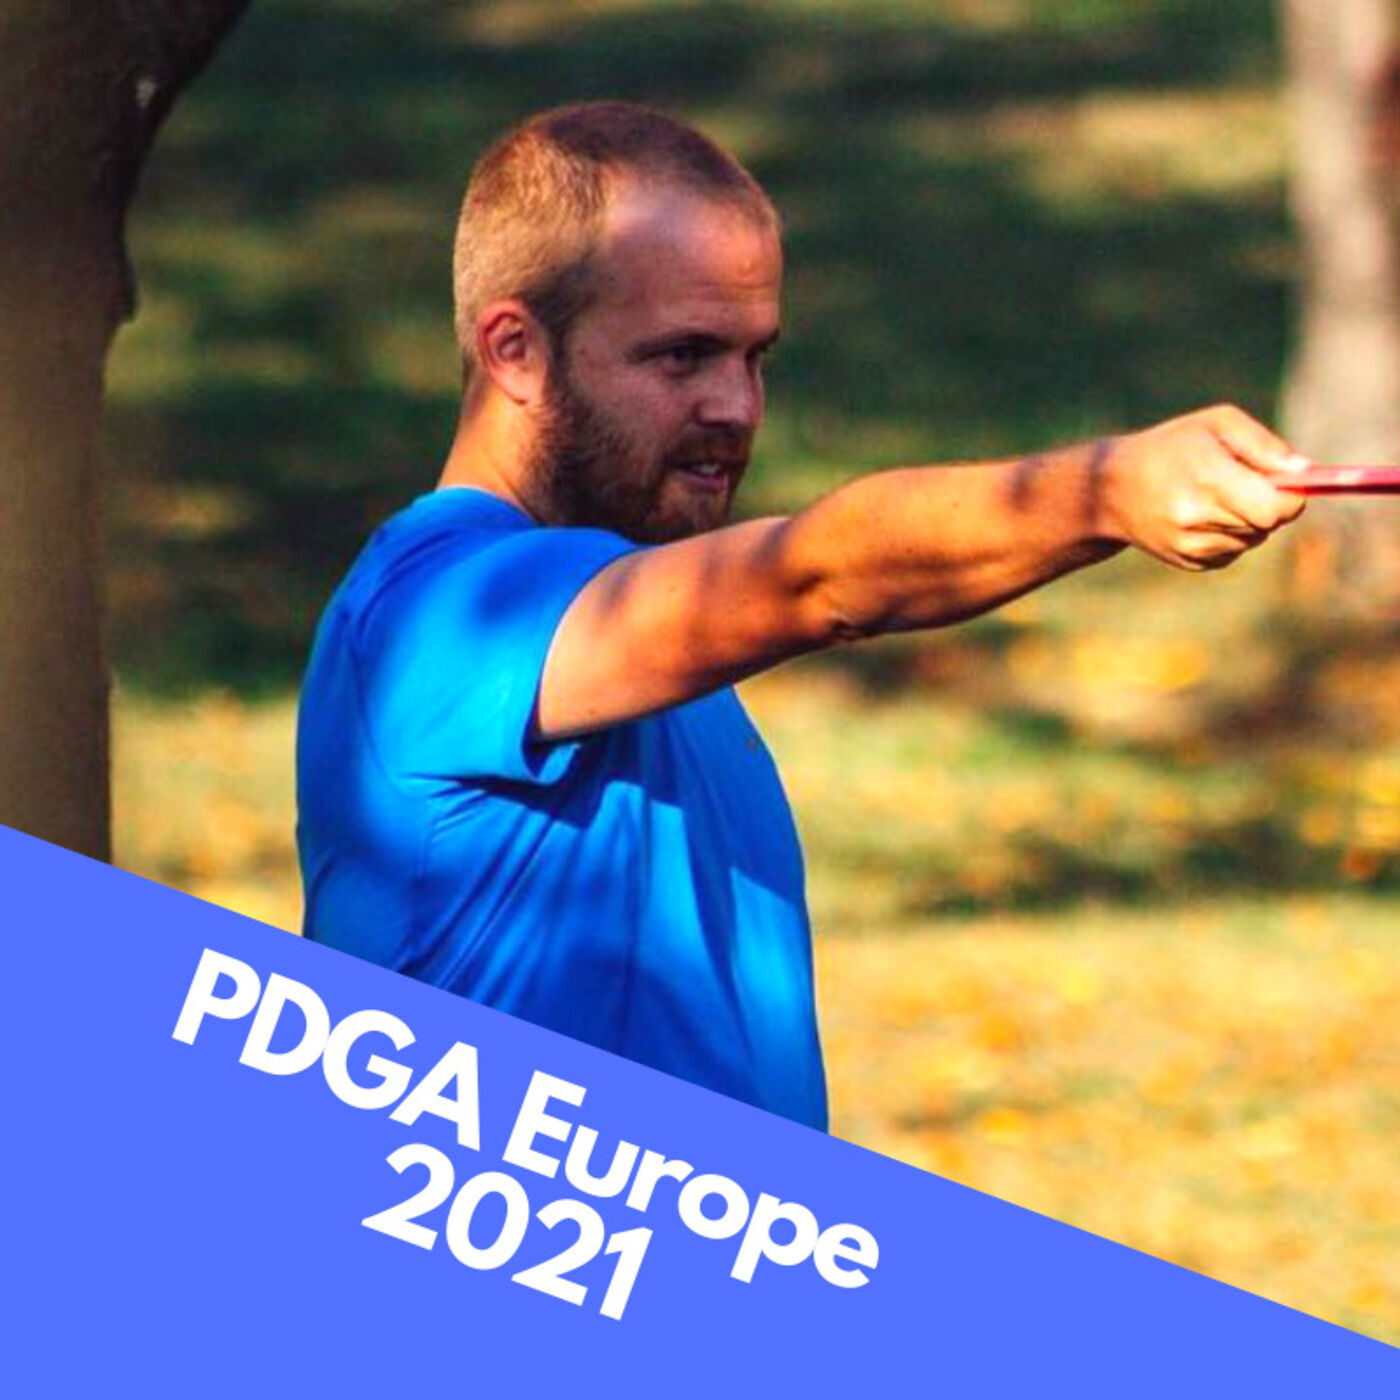 A look into PDGA Europe 2021